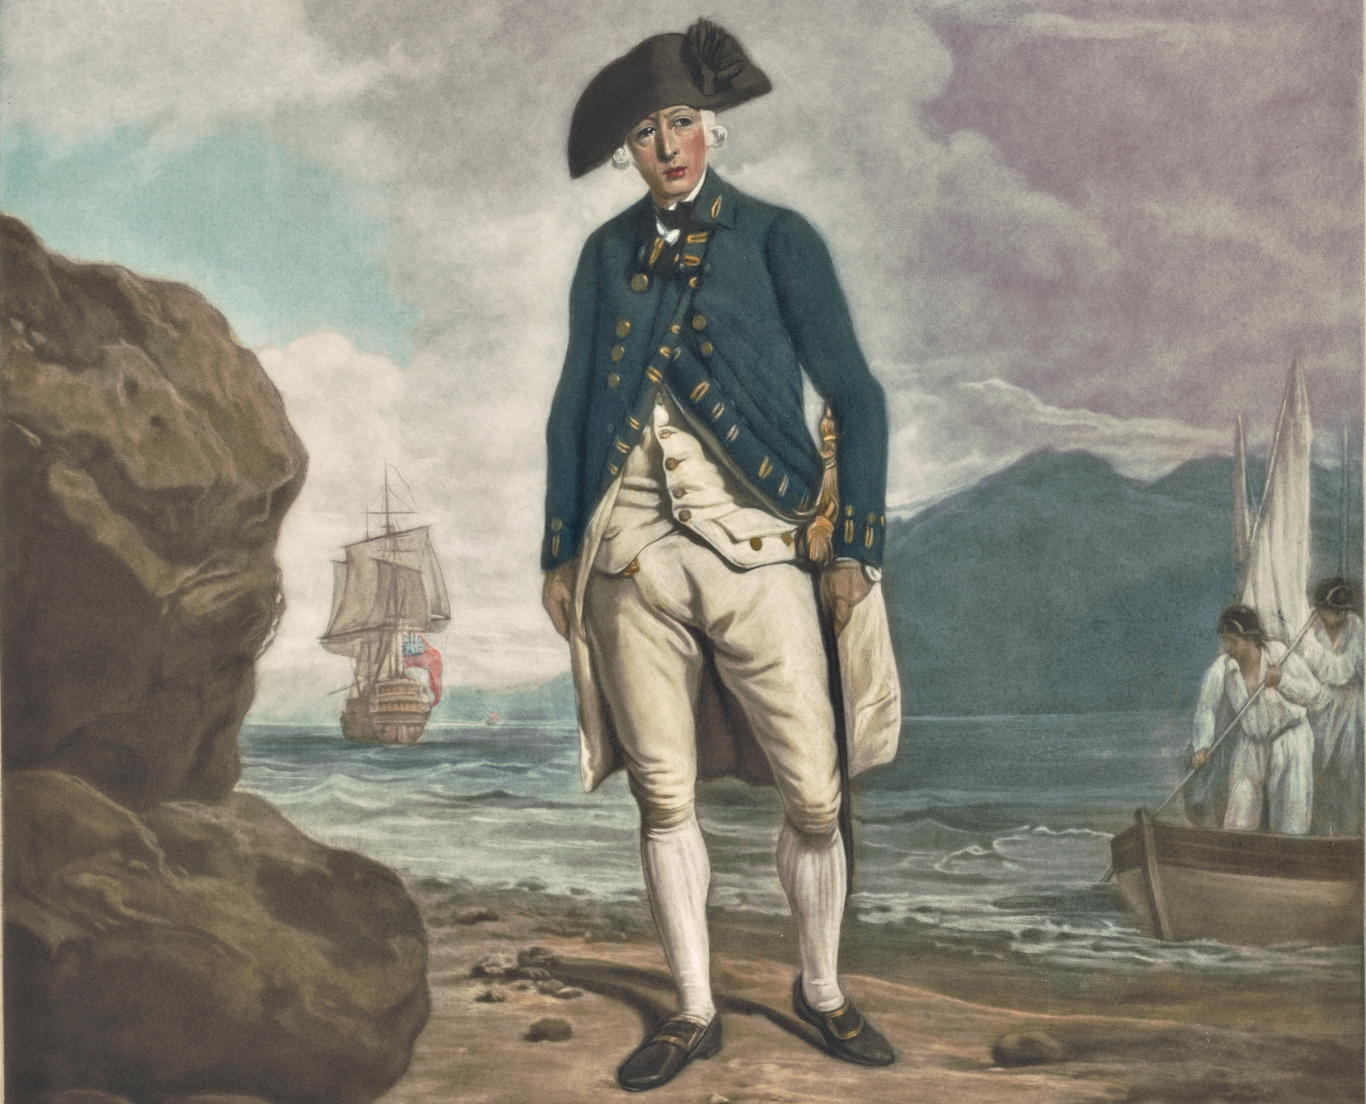 Portrait of man in uniform with black hat, standing on beach with ship and small boat in background.